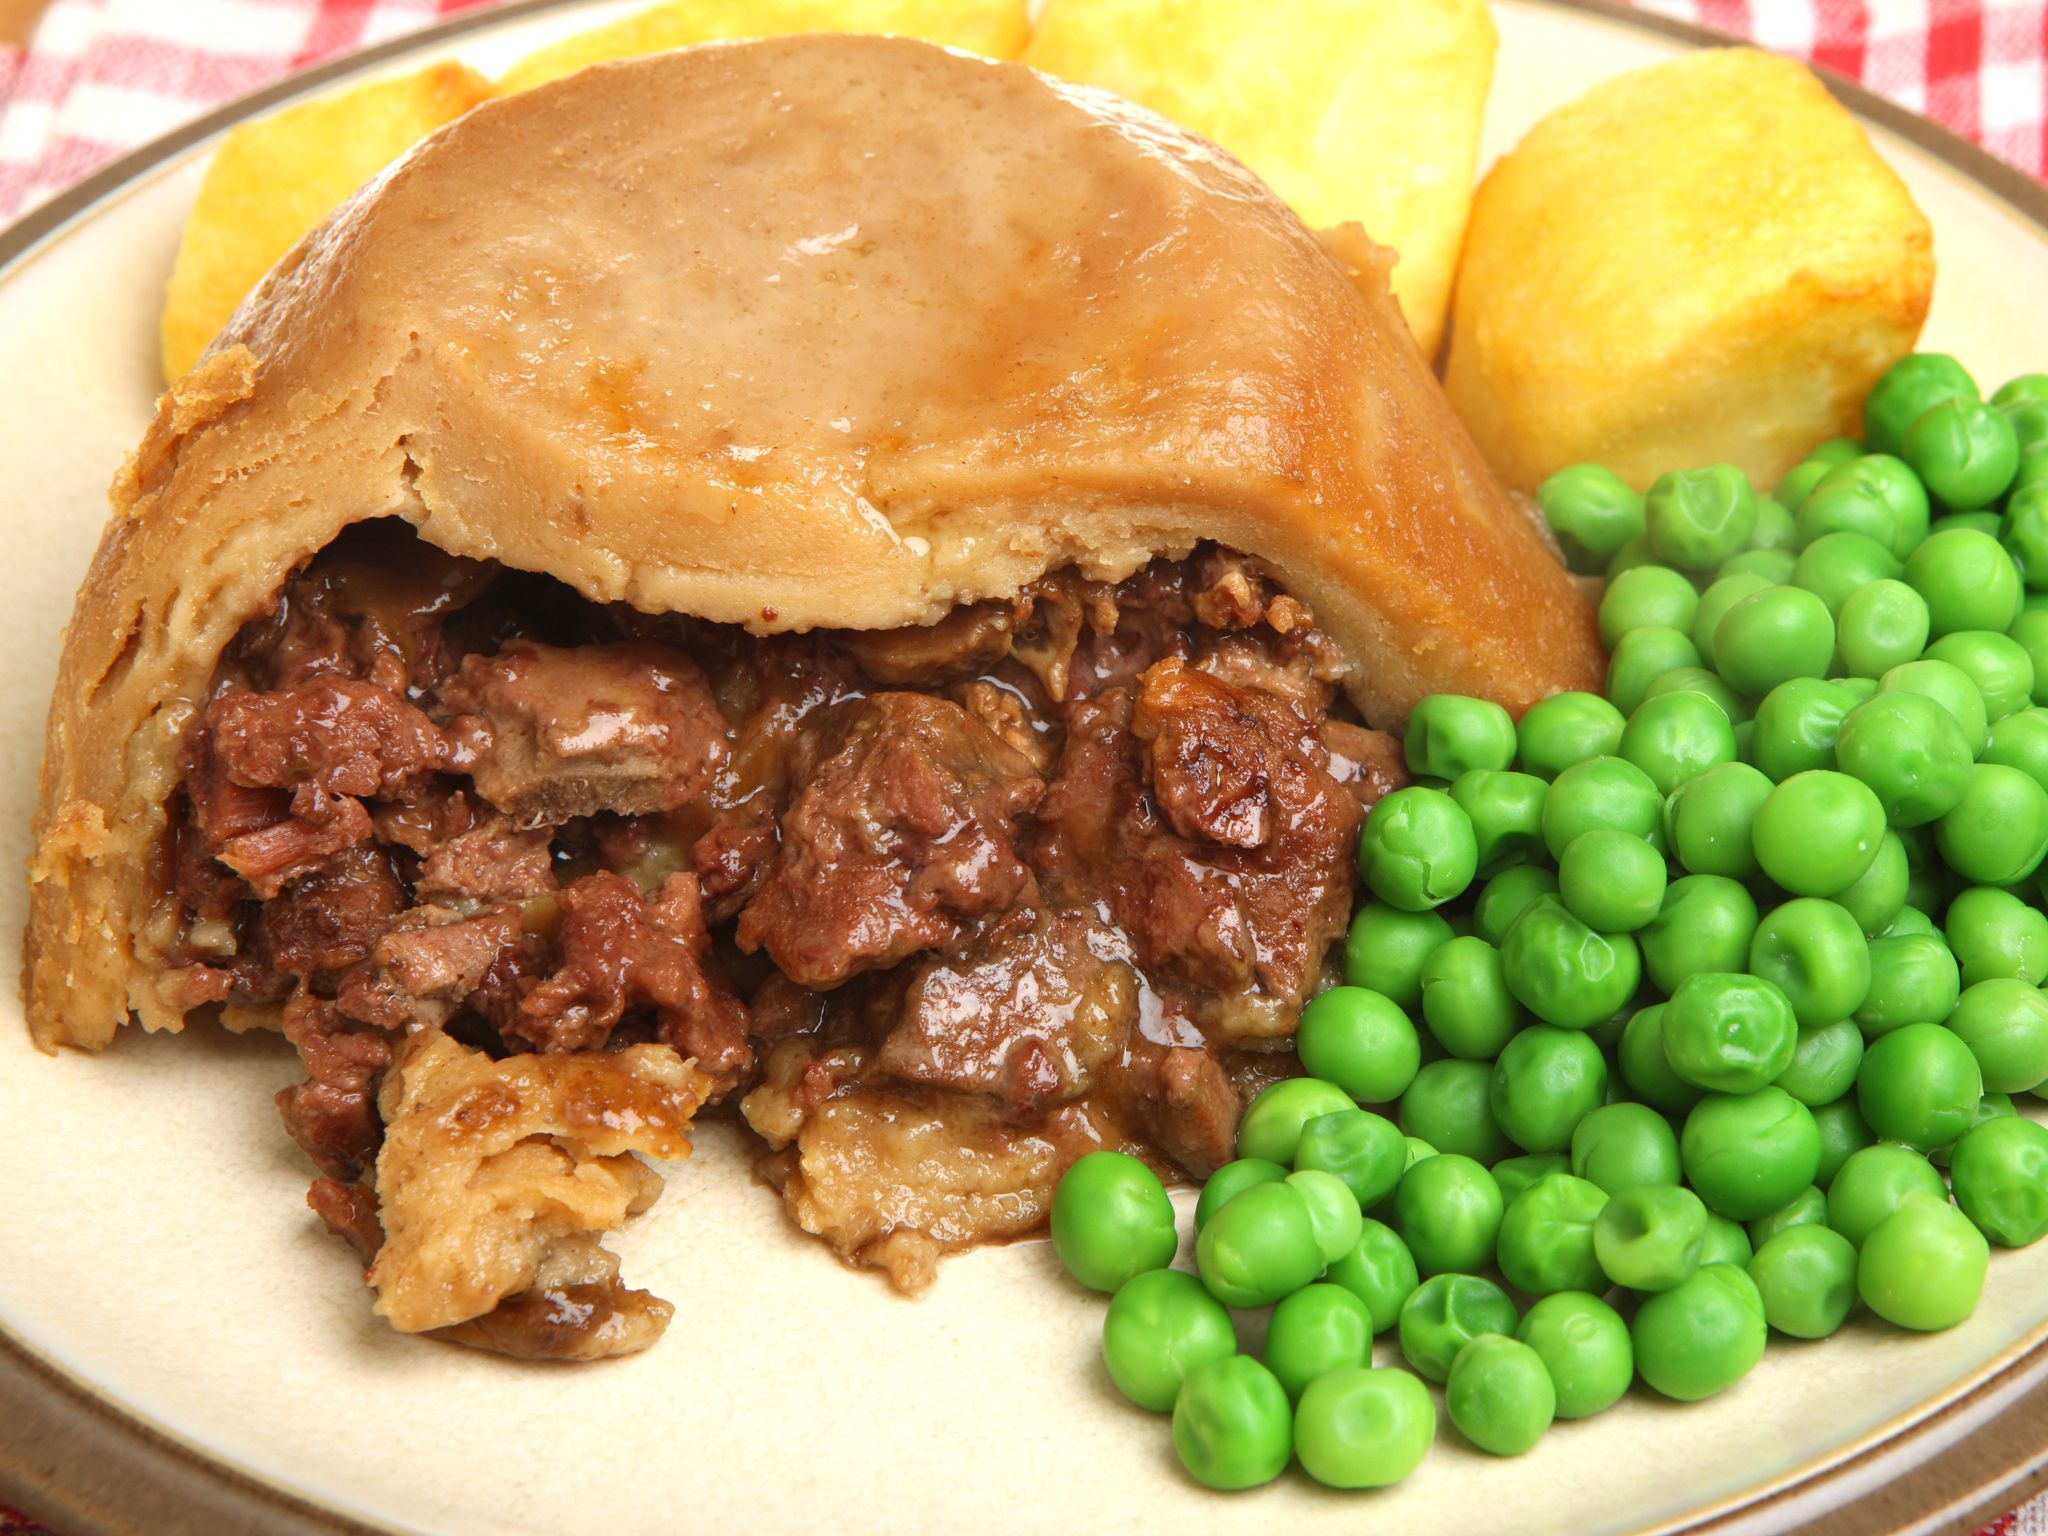 Steak and kidney pie is made with lamb or pork kidneys ...